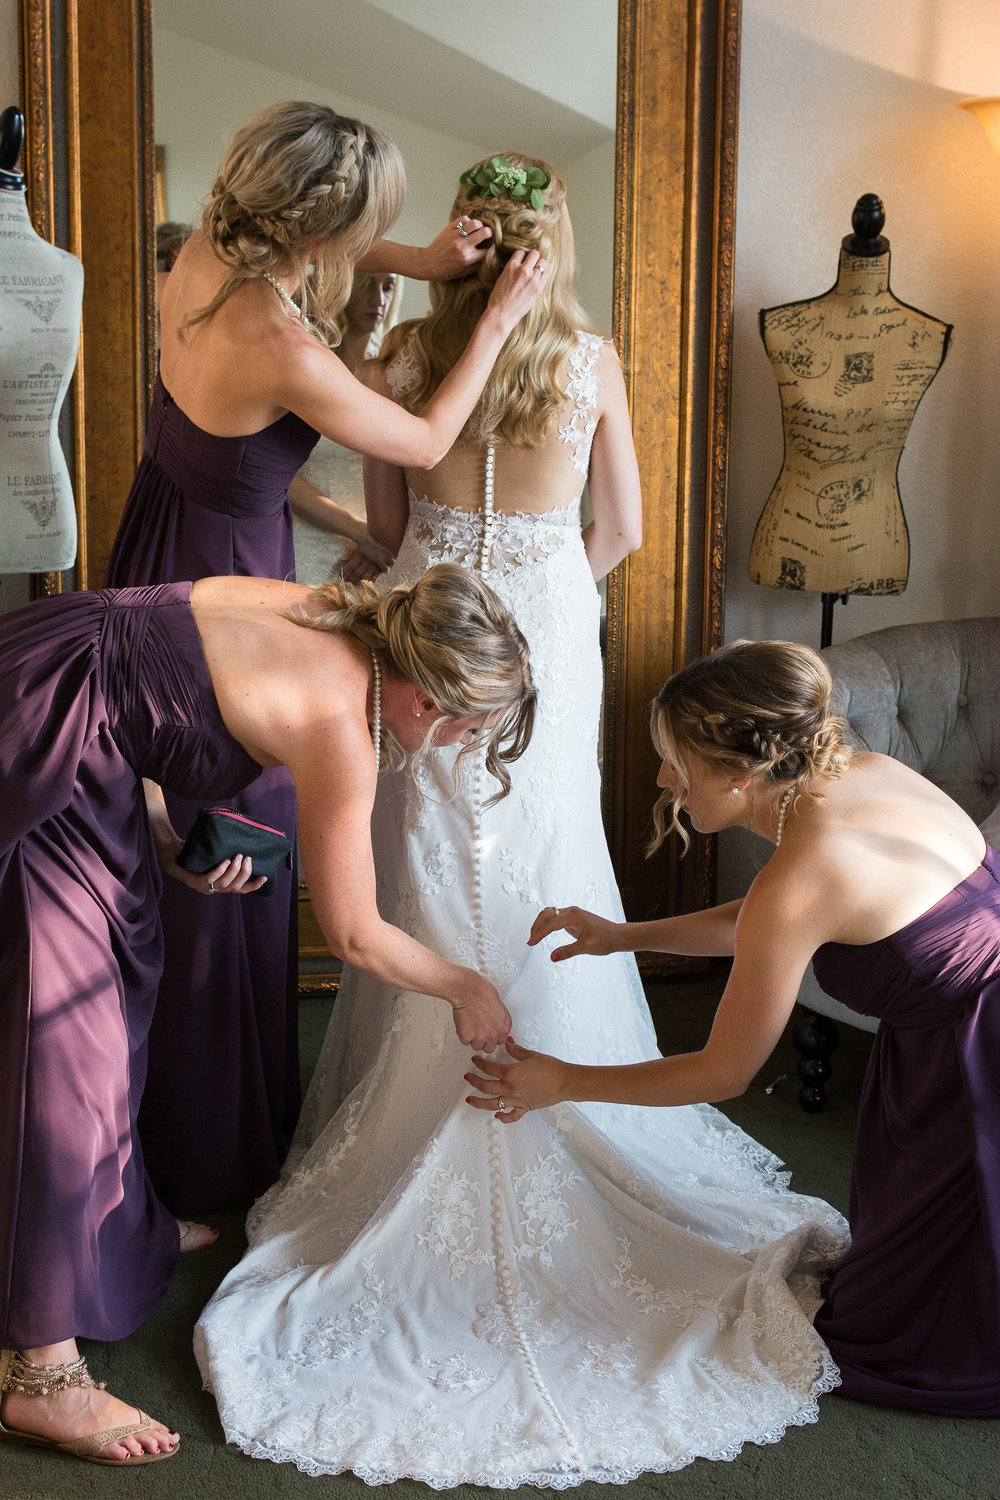 Bustling the wedding dress